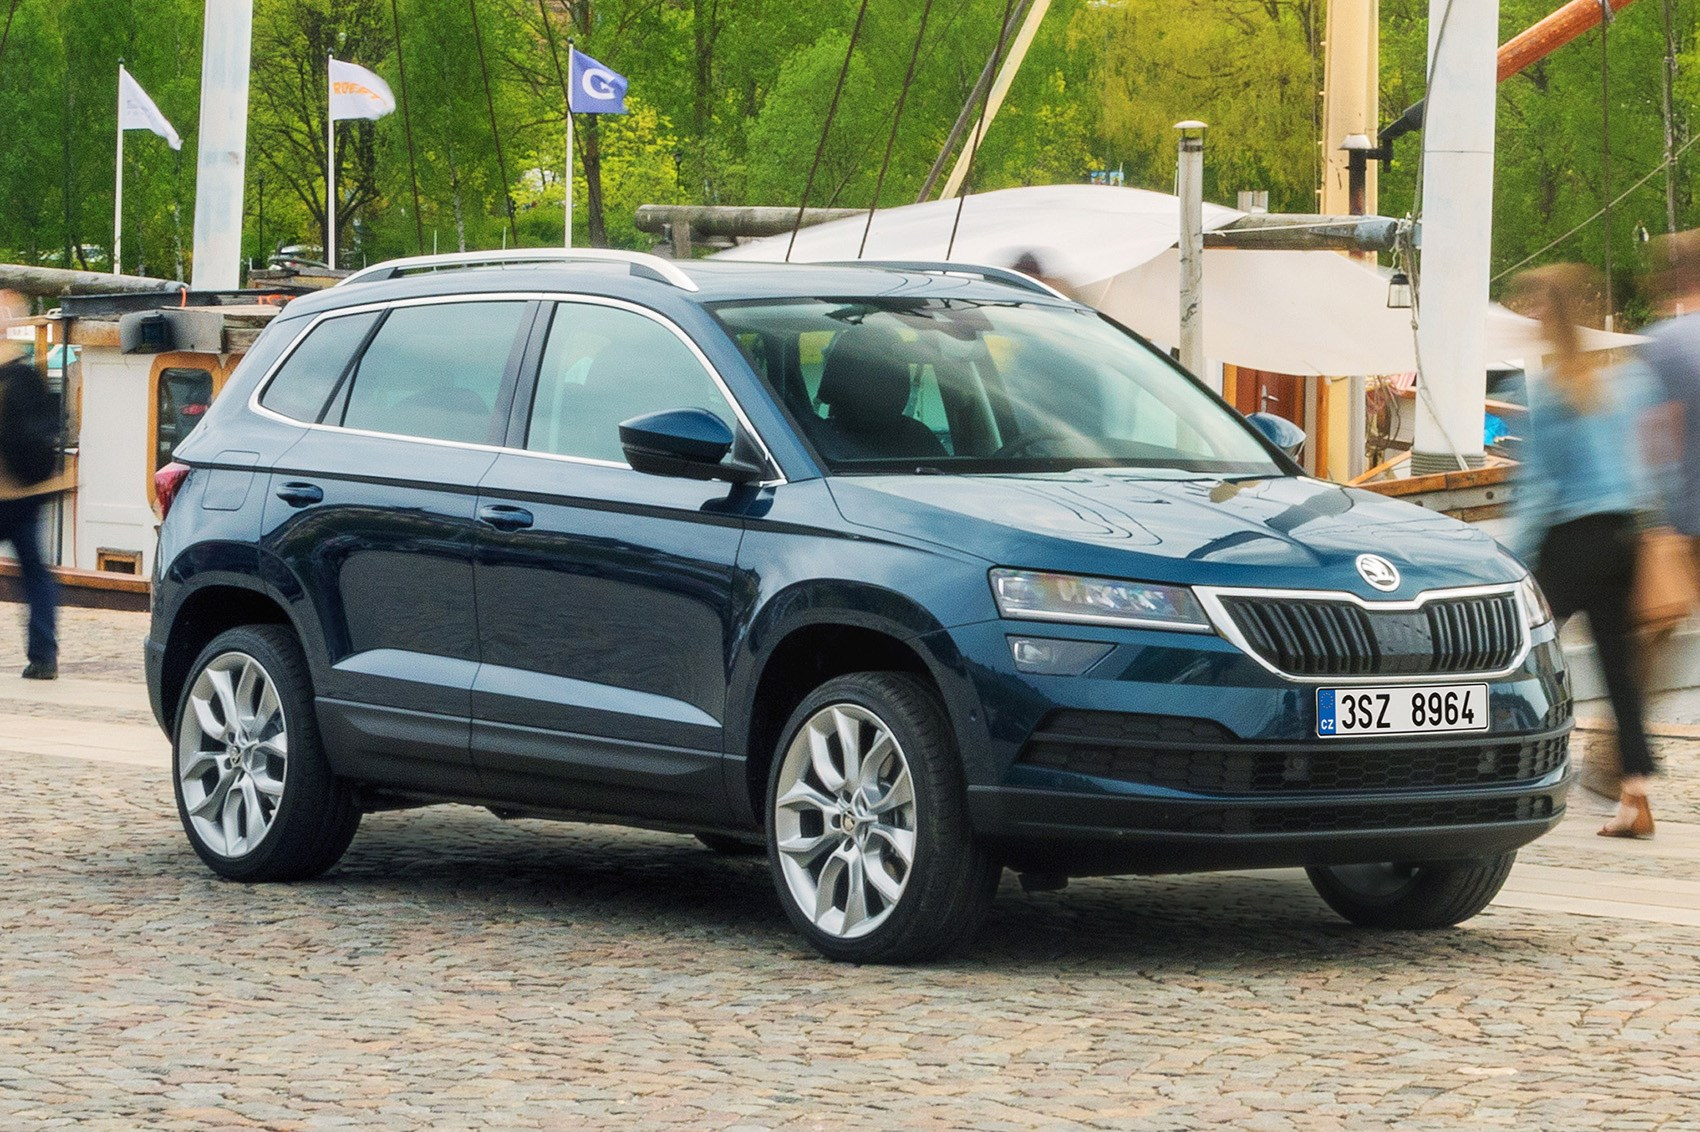 Skoda Karoq SUV review summary